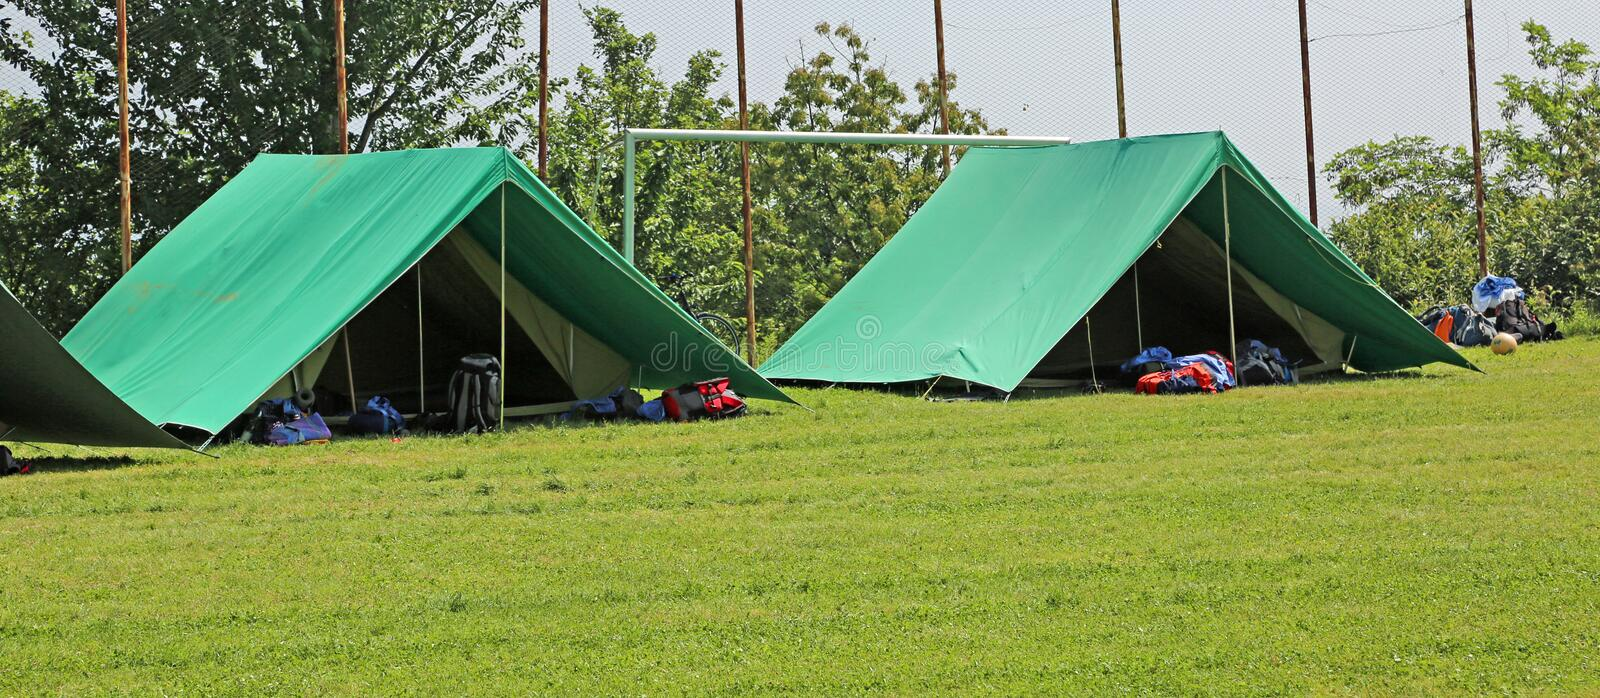 Two green tents mounted in a meadow by the scouts stock photo